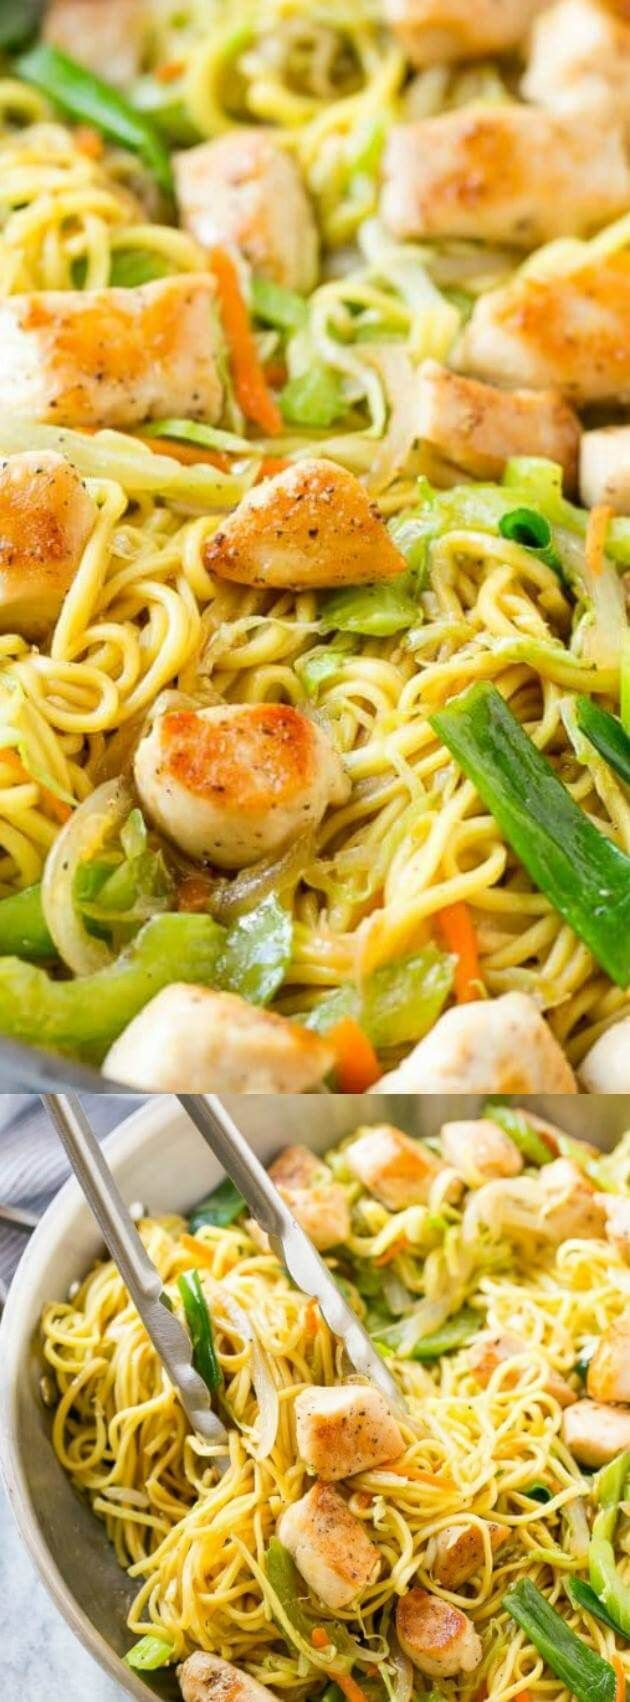 This Chicken Chow Mein from Dinner at the Zoo is full of seasoned chicken, veggies, and noodles. It's all tossed together in the most amazing savory sauce!